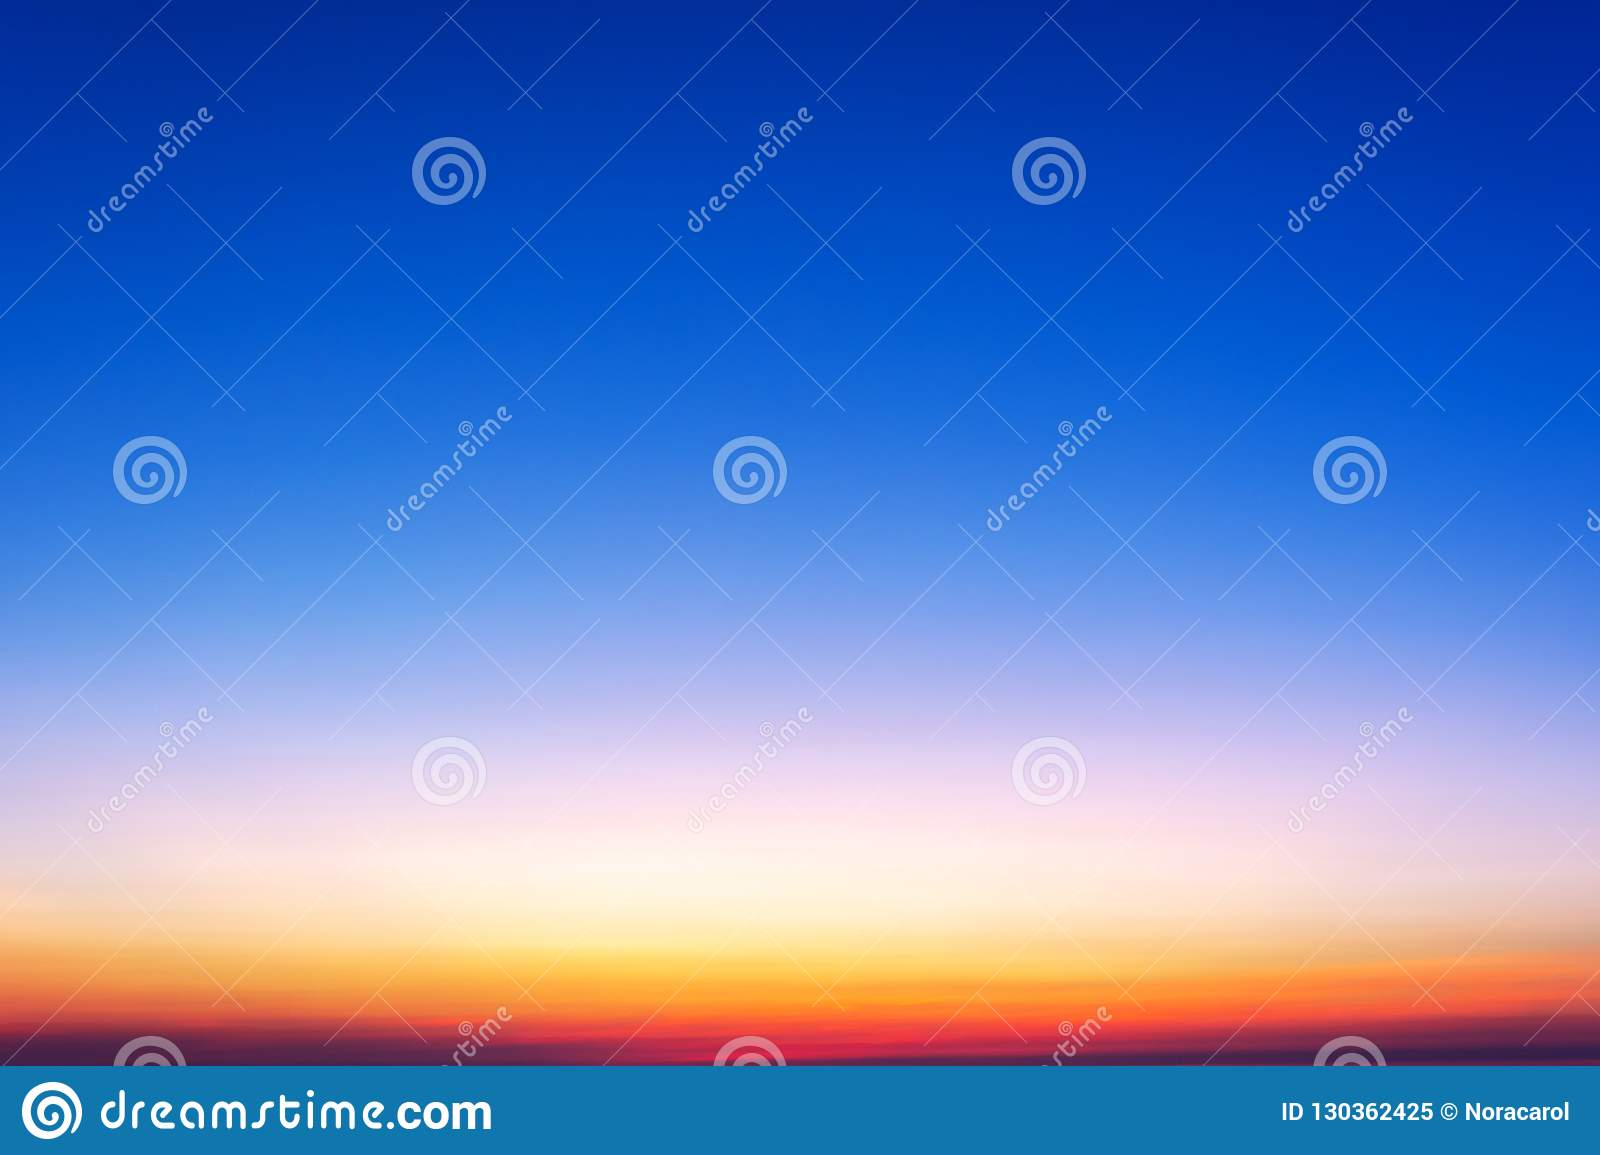 Sunset Gradient Background Stock Image Image Of Sunrise 130362425